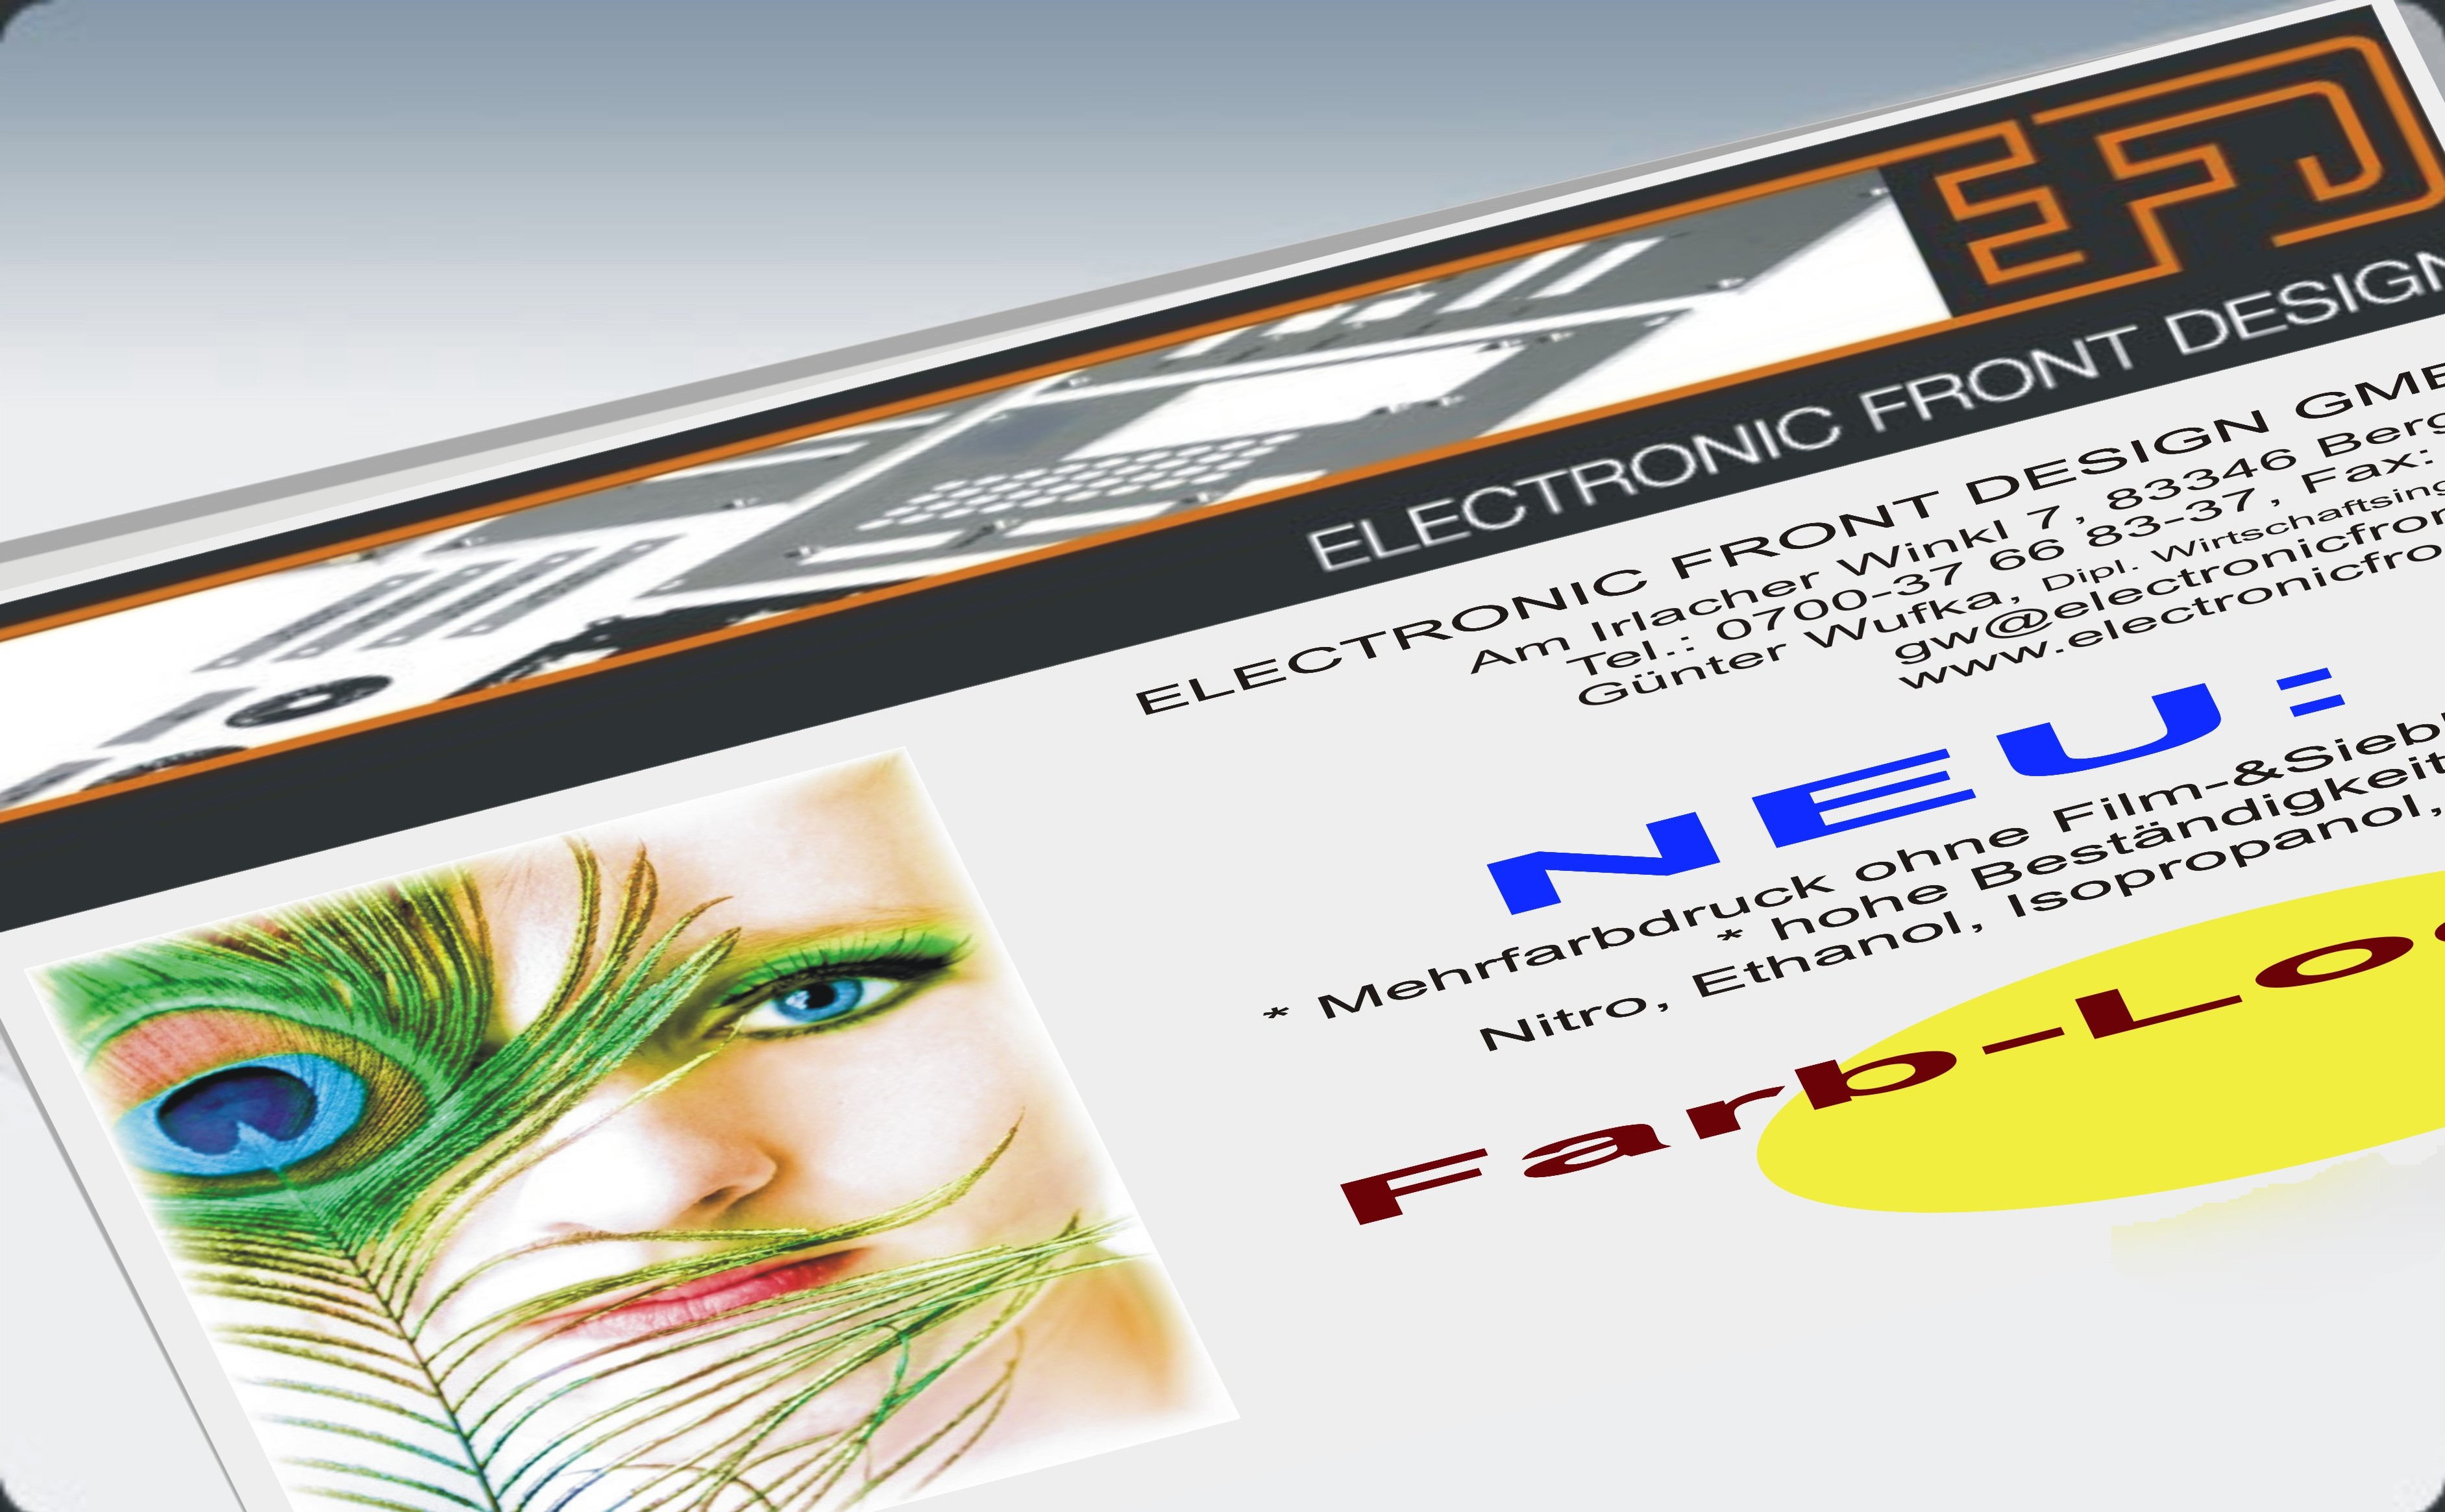 EFD - Electronic Front Design